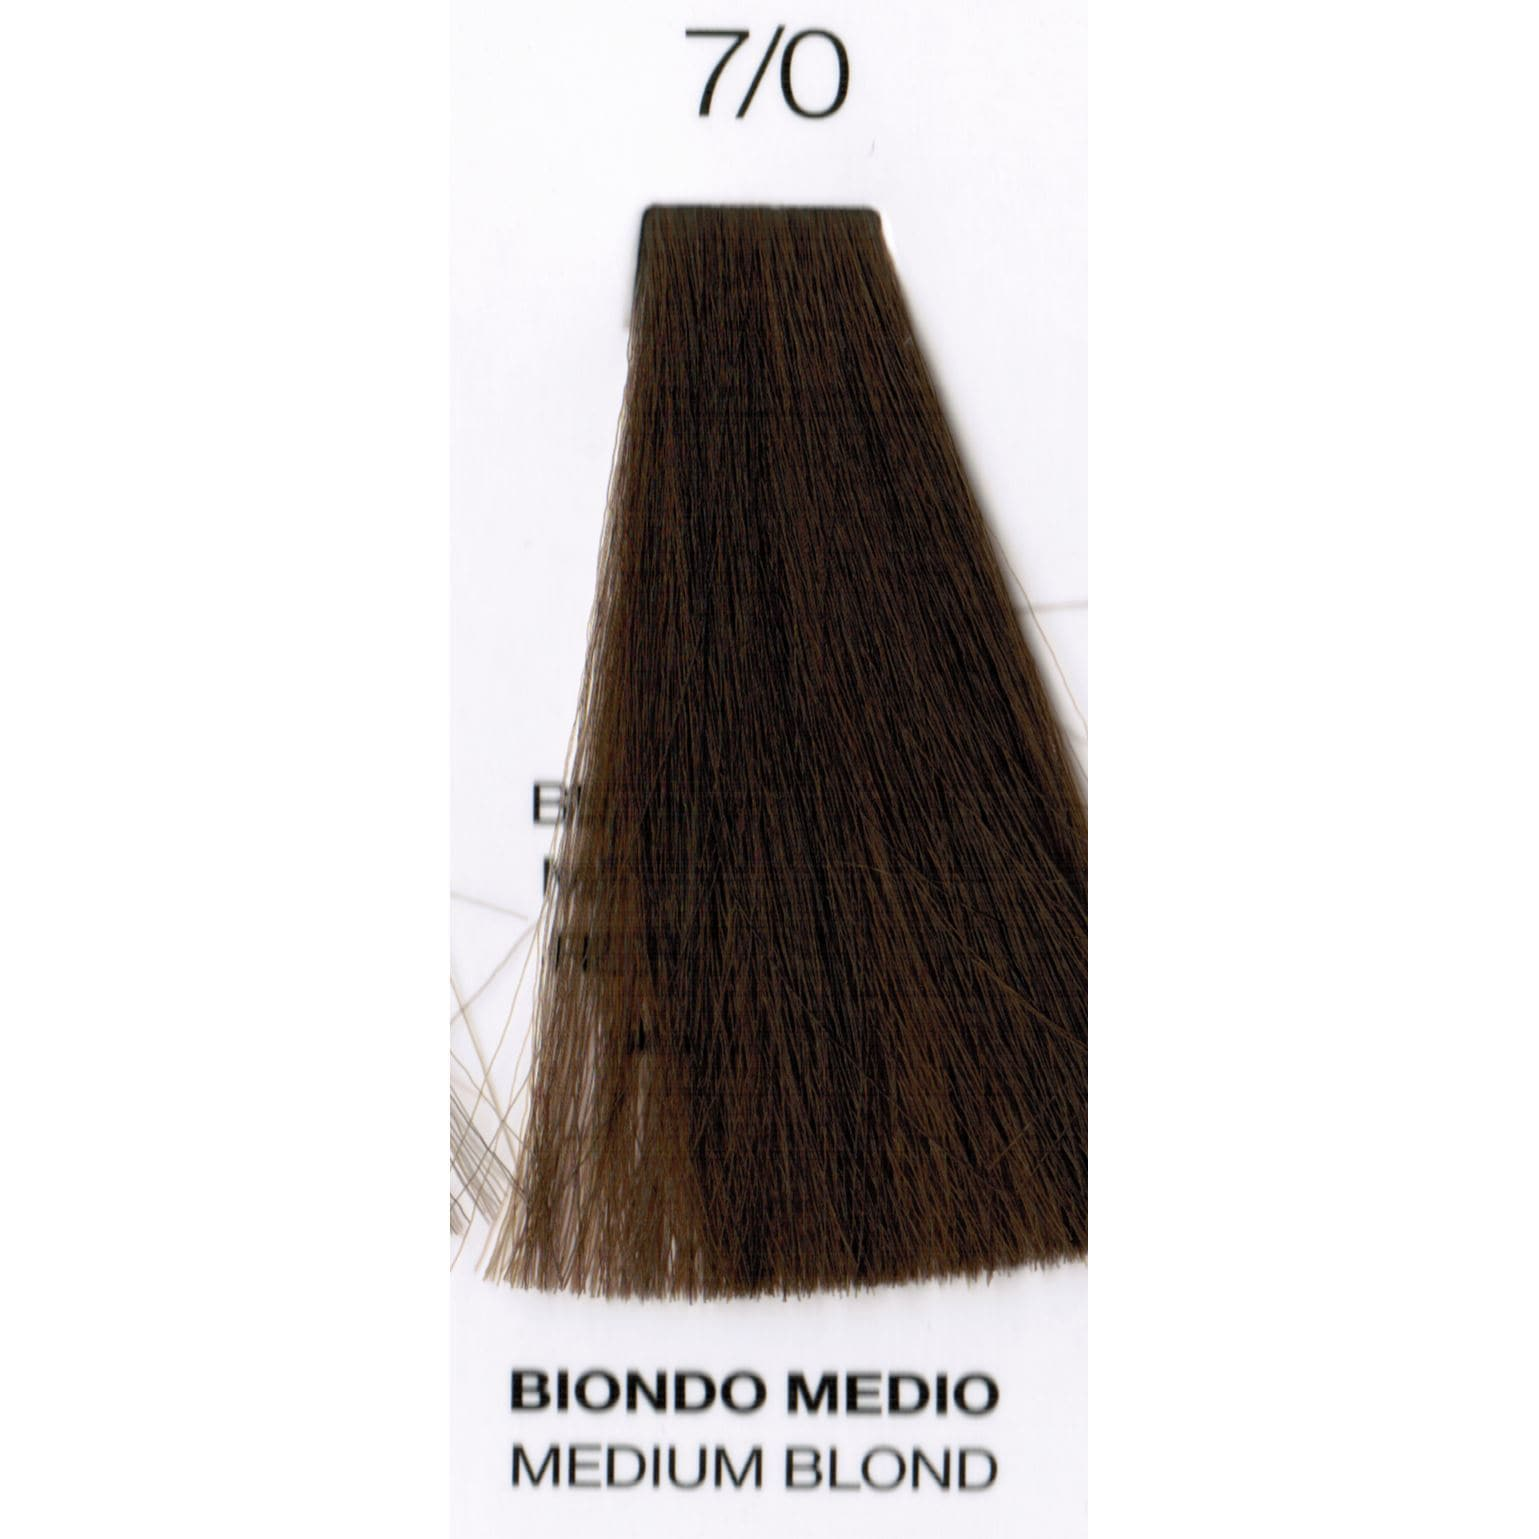 7/0 Medium Blond | Purity | Ammonia-Free Permanent Hair Color | OYSTER | SHSalons.com